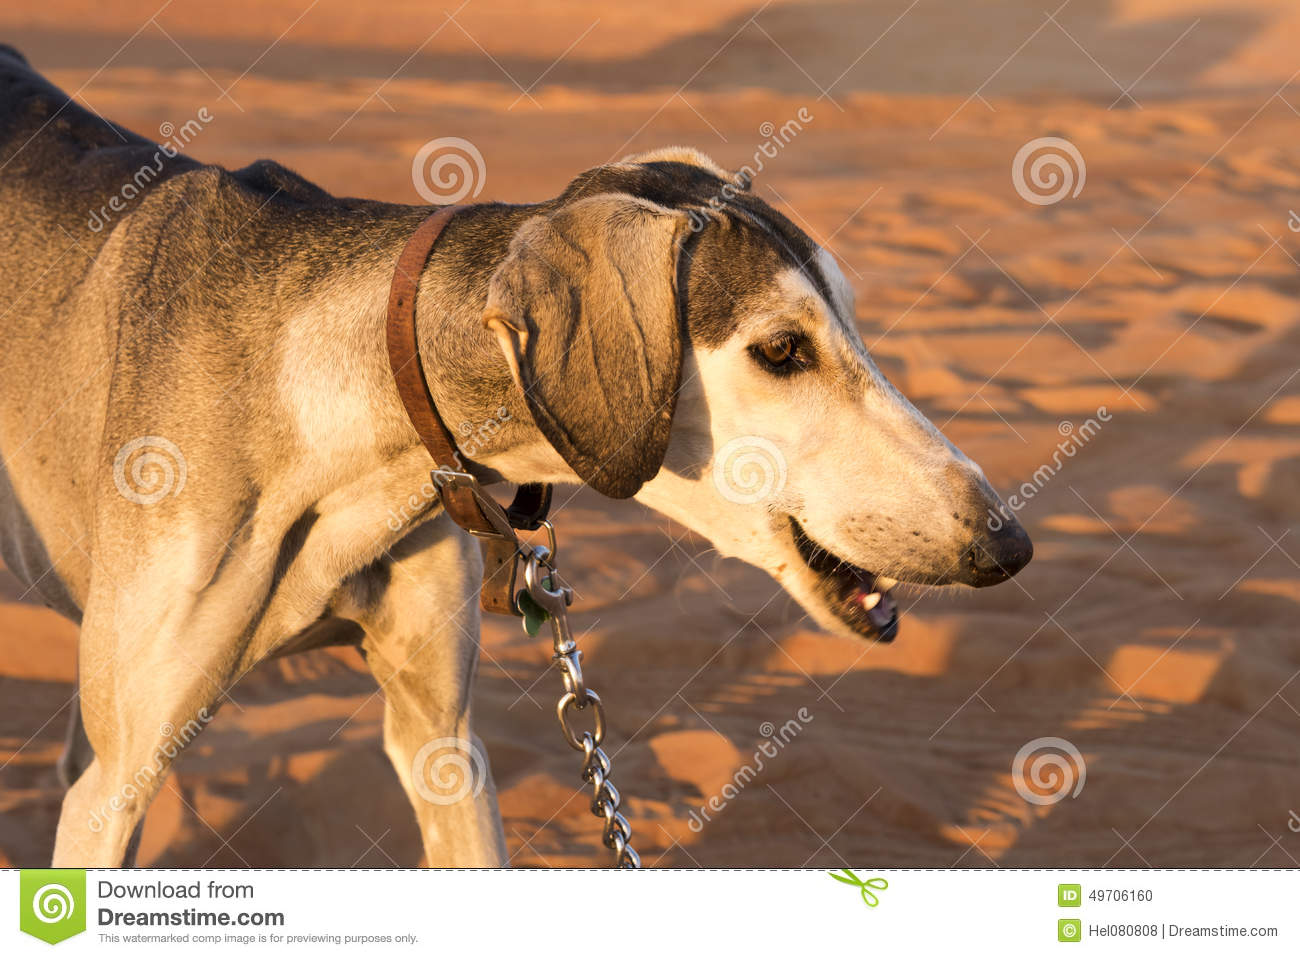 Saluki Dog Stock Photo - Image: 49706160